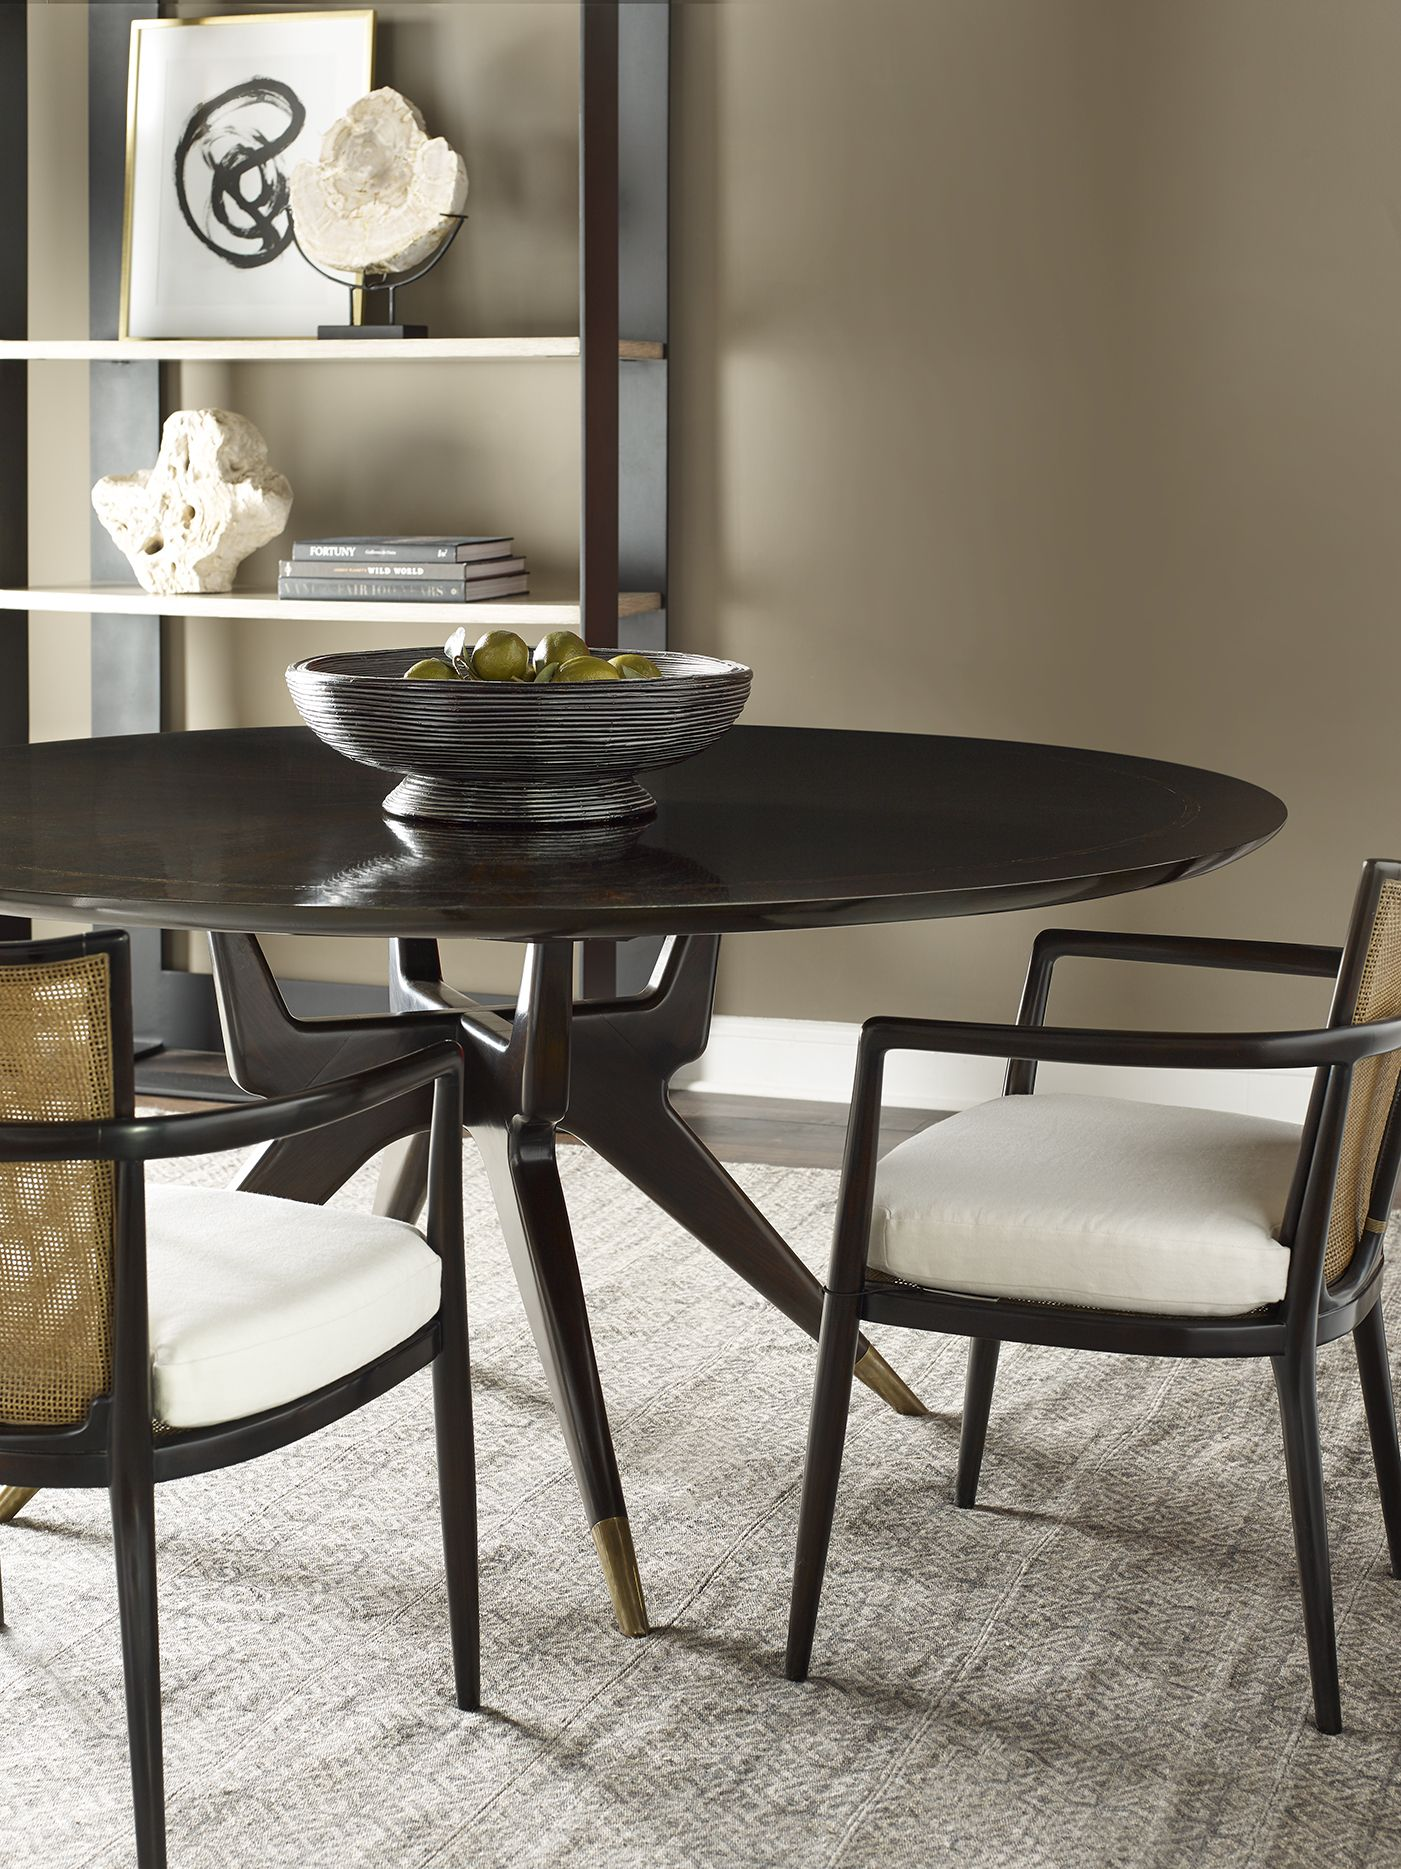 Alfonso Marina (With images) | Table, Dining table, Coffee ...